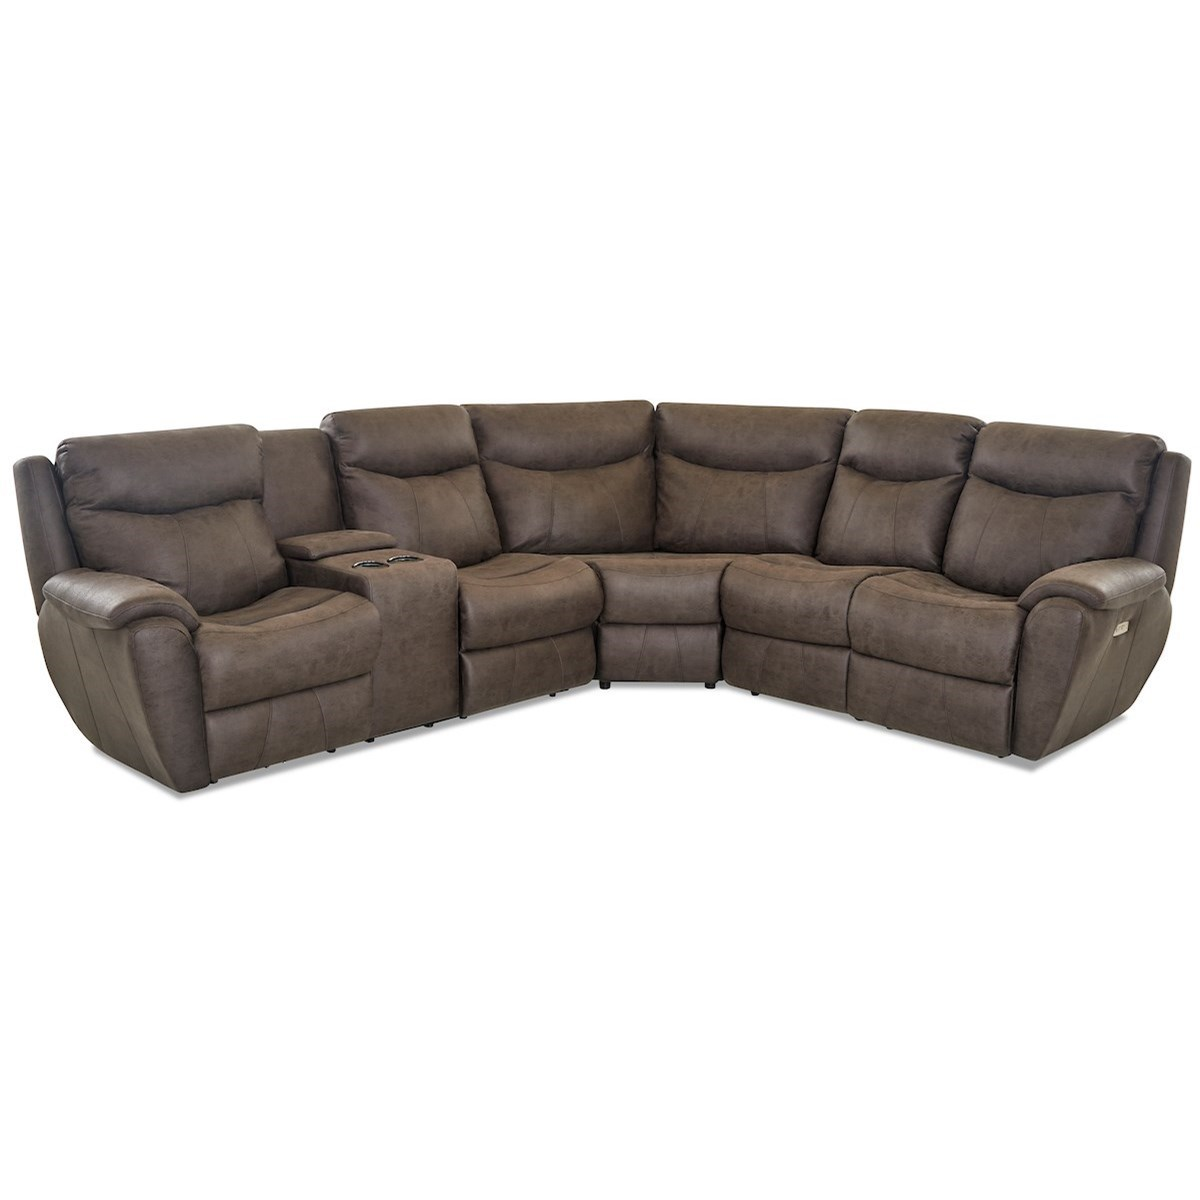 Proximo Pwr Recline Sectional w/ LAF Cnsl & Pwr Head by Klaussner at Northeast Factory Direct